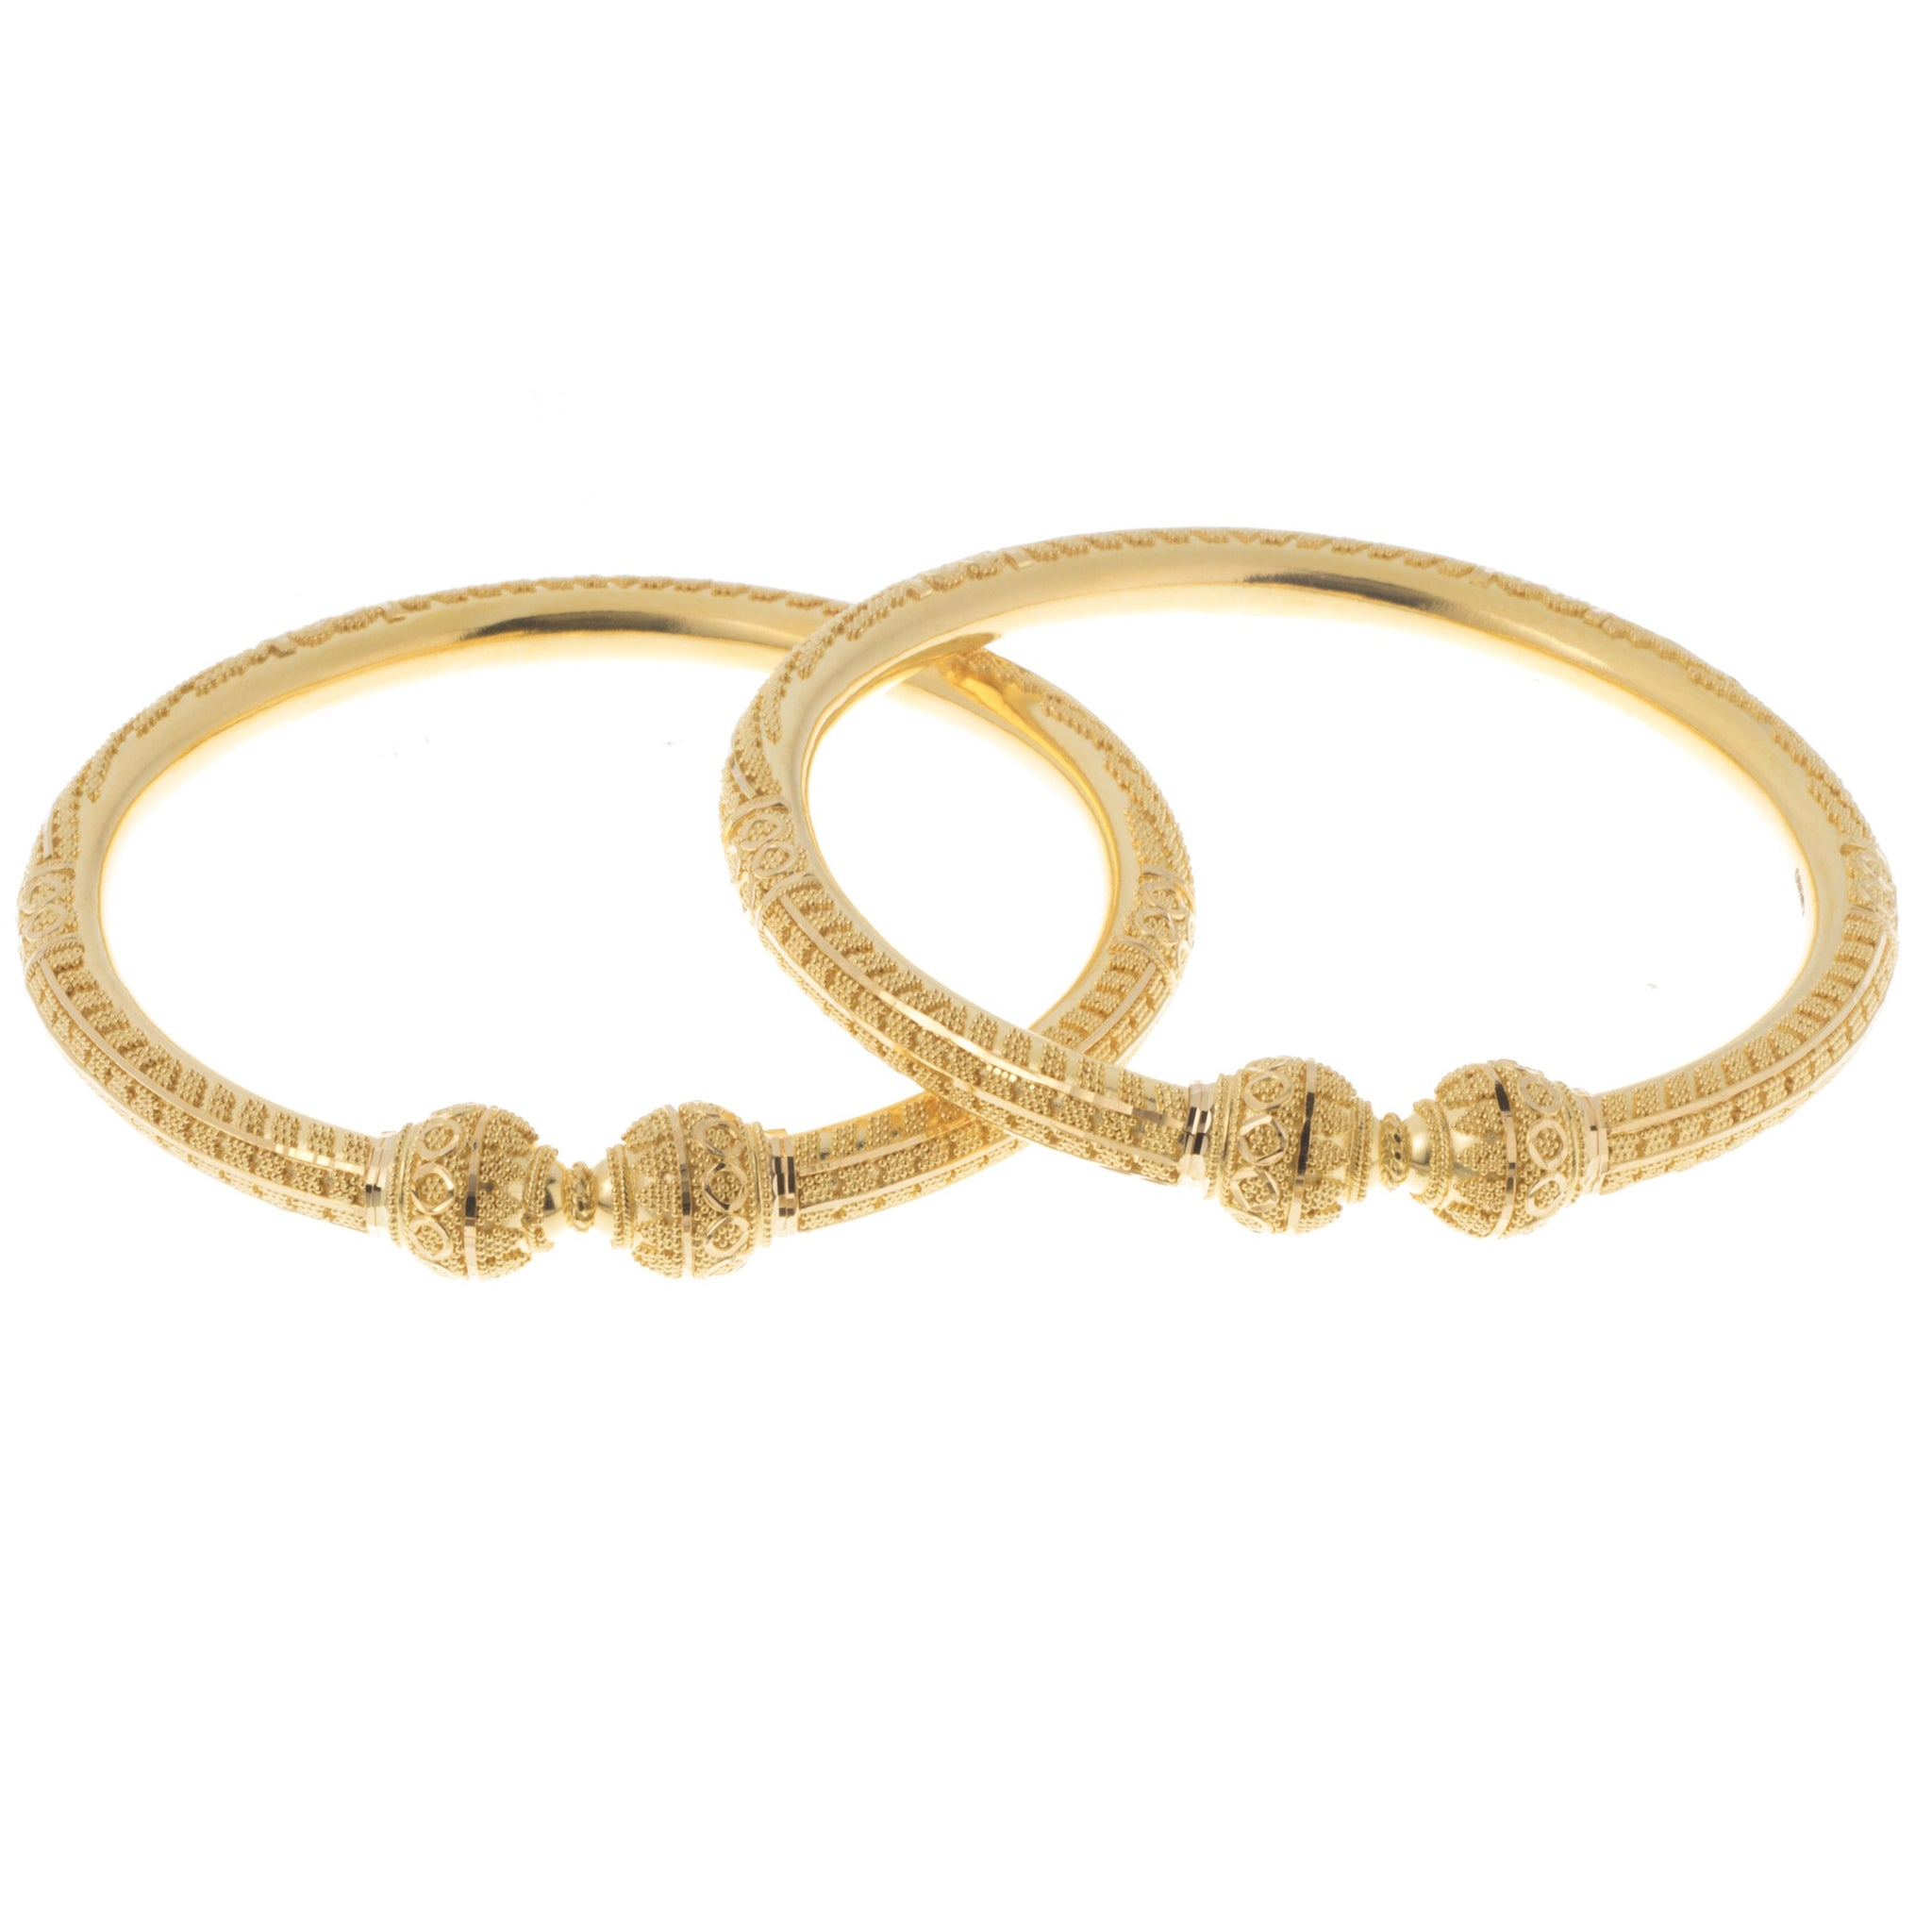 22ct Gold Bangles with Diamond Cut Design and Comfort Fit B-7404